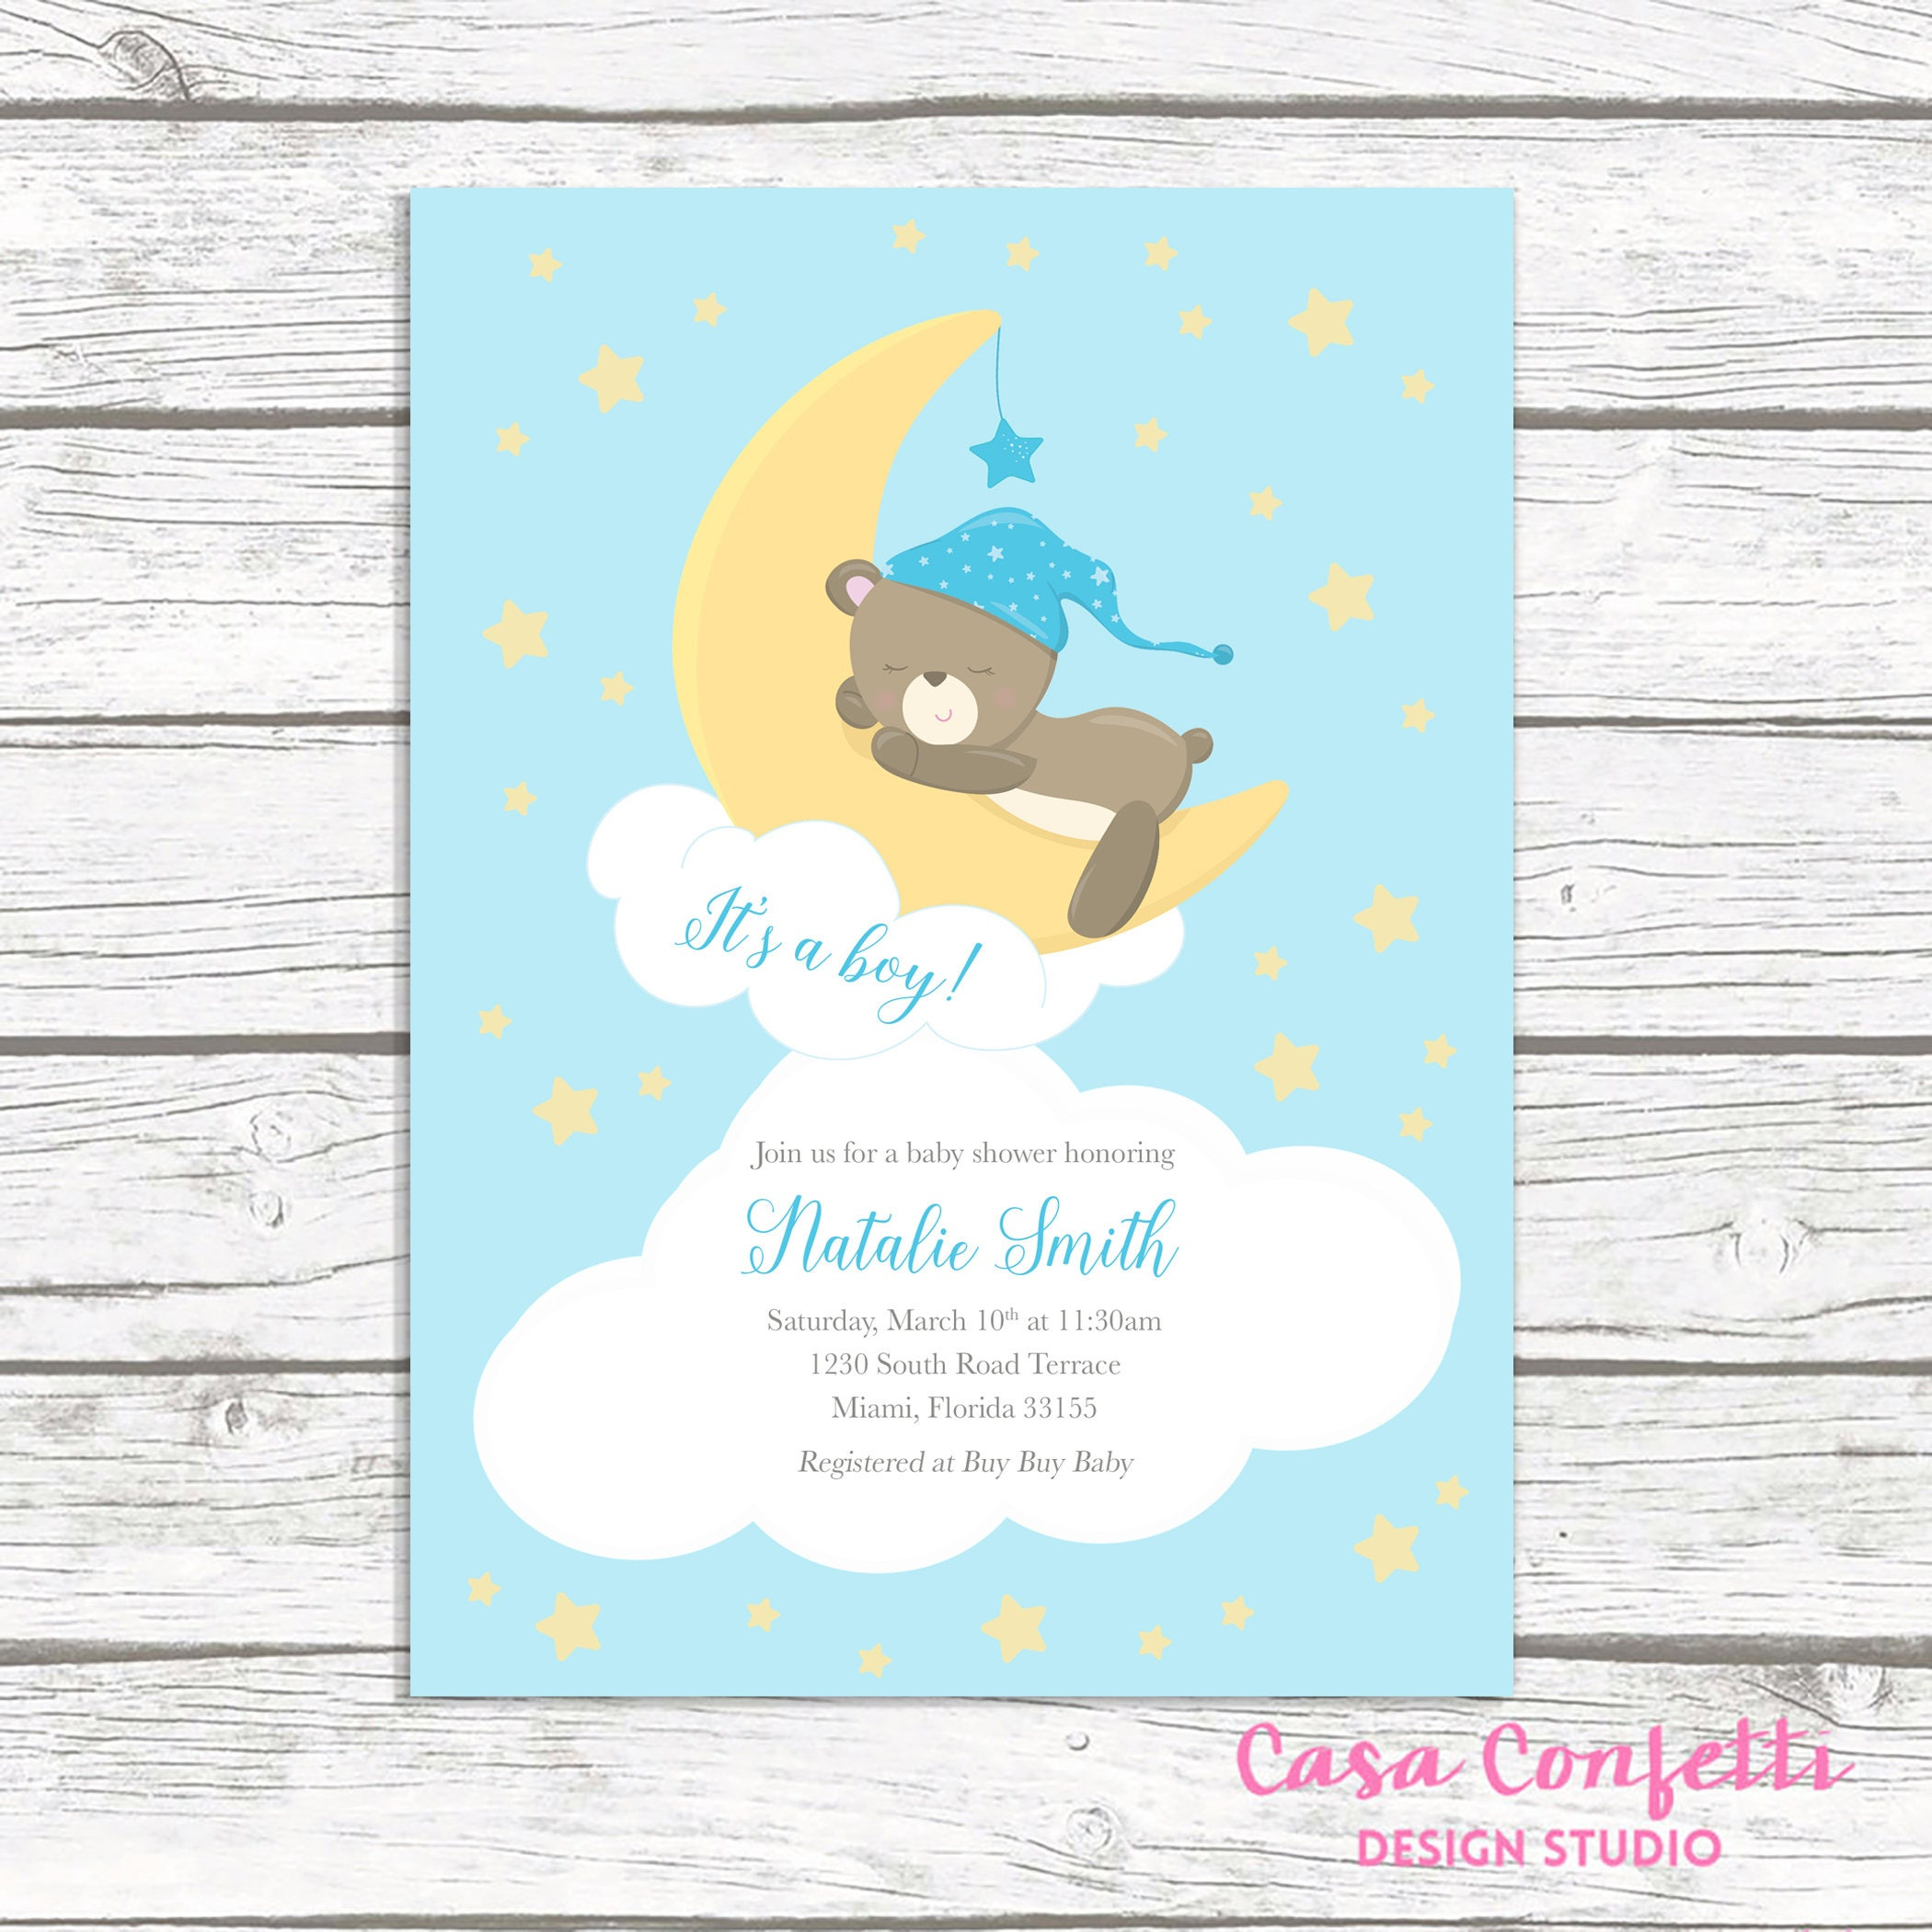 Moon Baby Shower Invitation Boy, Teddy Bear Baby Shower Invitation, It's a  B... Moon Baby Shower Invitation Boy, Teddy Bear Baby Shower Invitation, ...